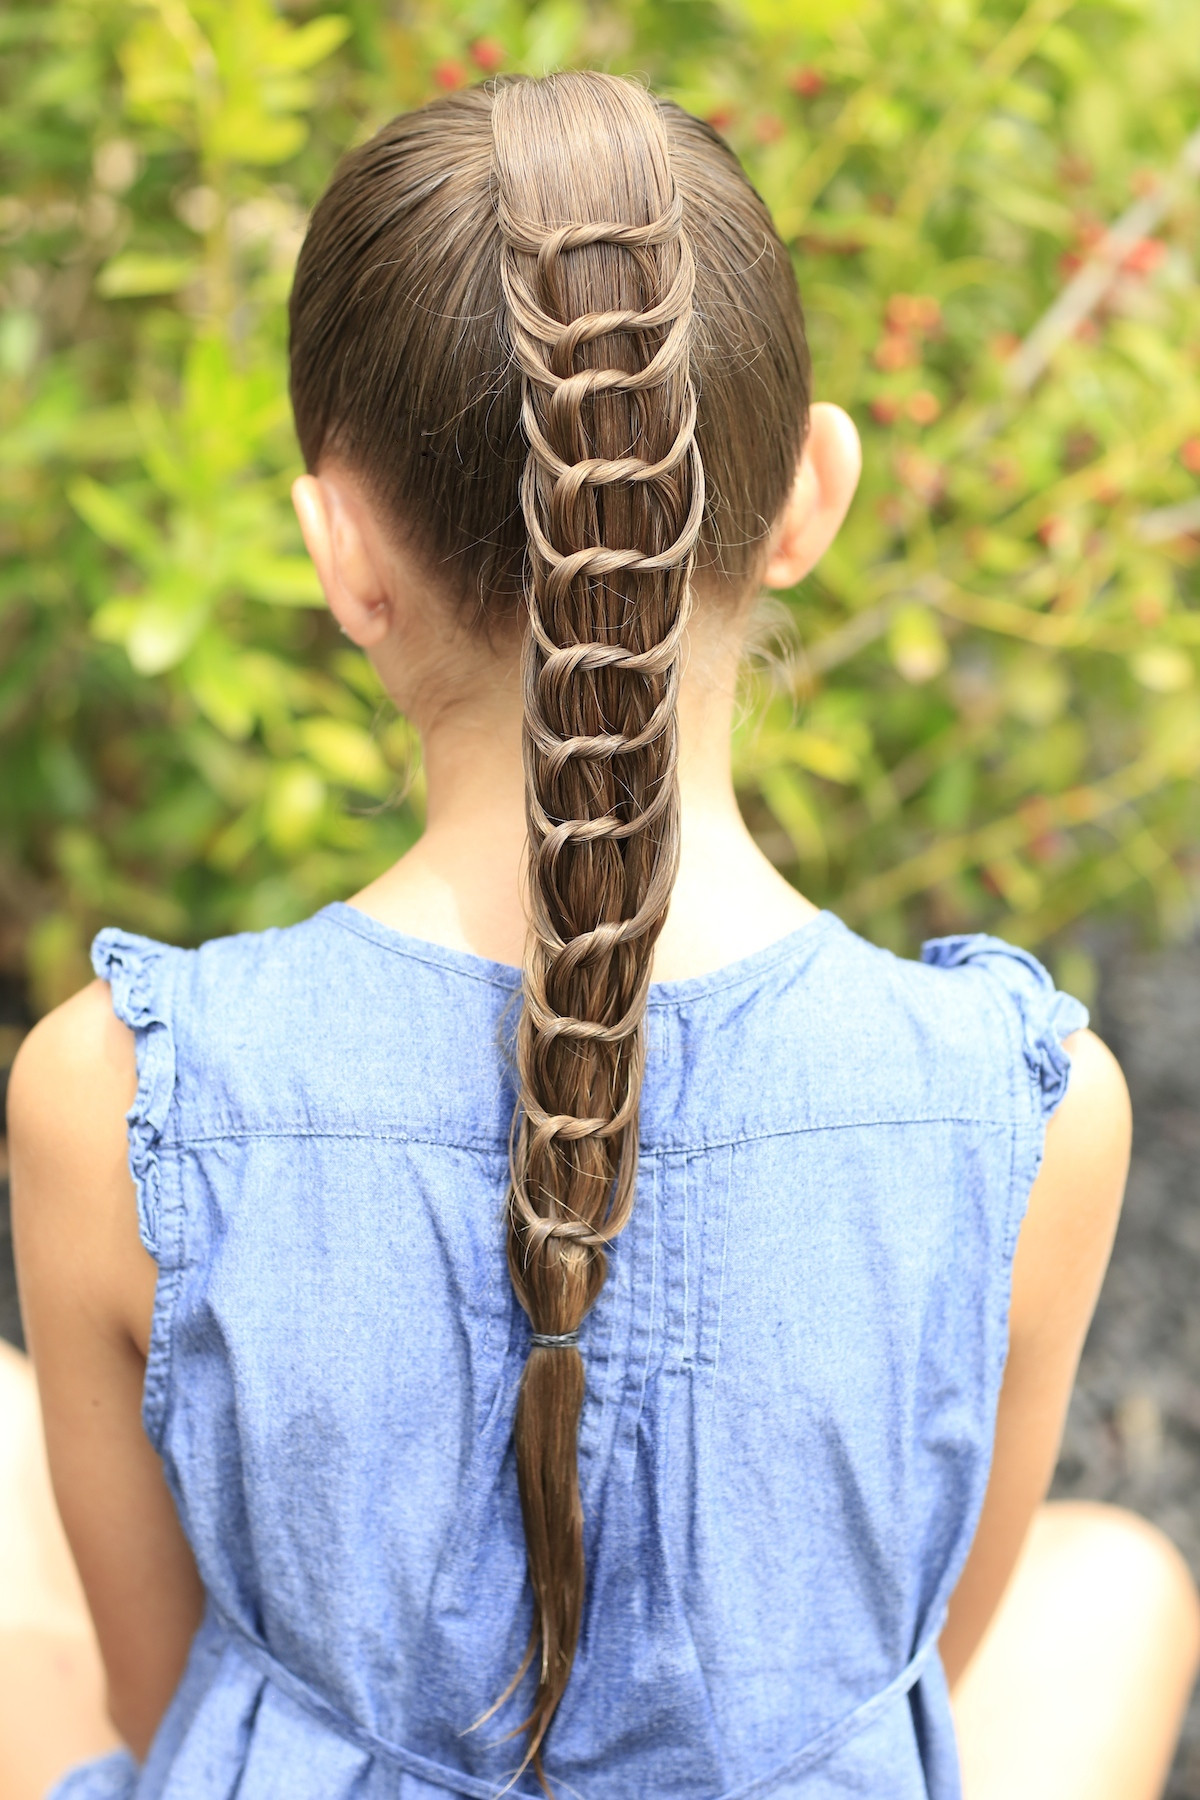 Best ideas about Girls Hair Cut Styles . Save or Pin The Knotted Ponytail Hairstyles for Girls Now.